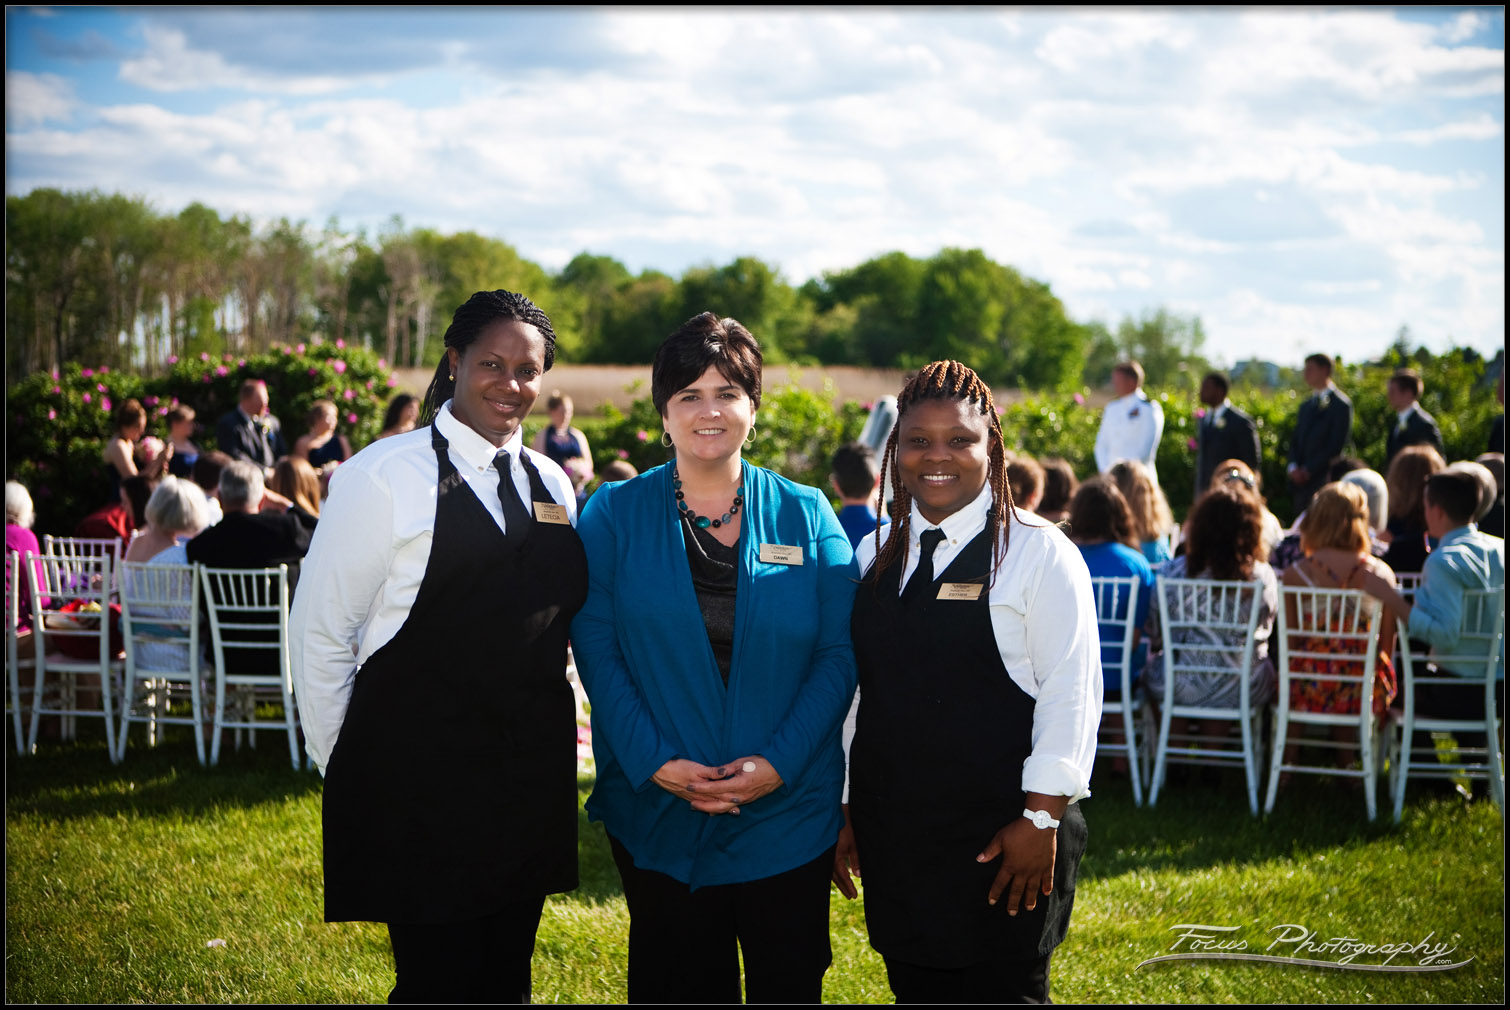 Dawn and her team ensure the wedding ceremony goes smoothly at the Nonantum Resort